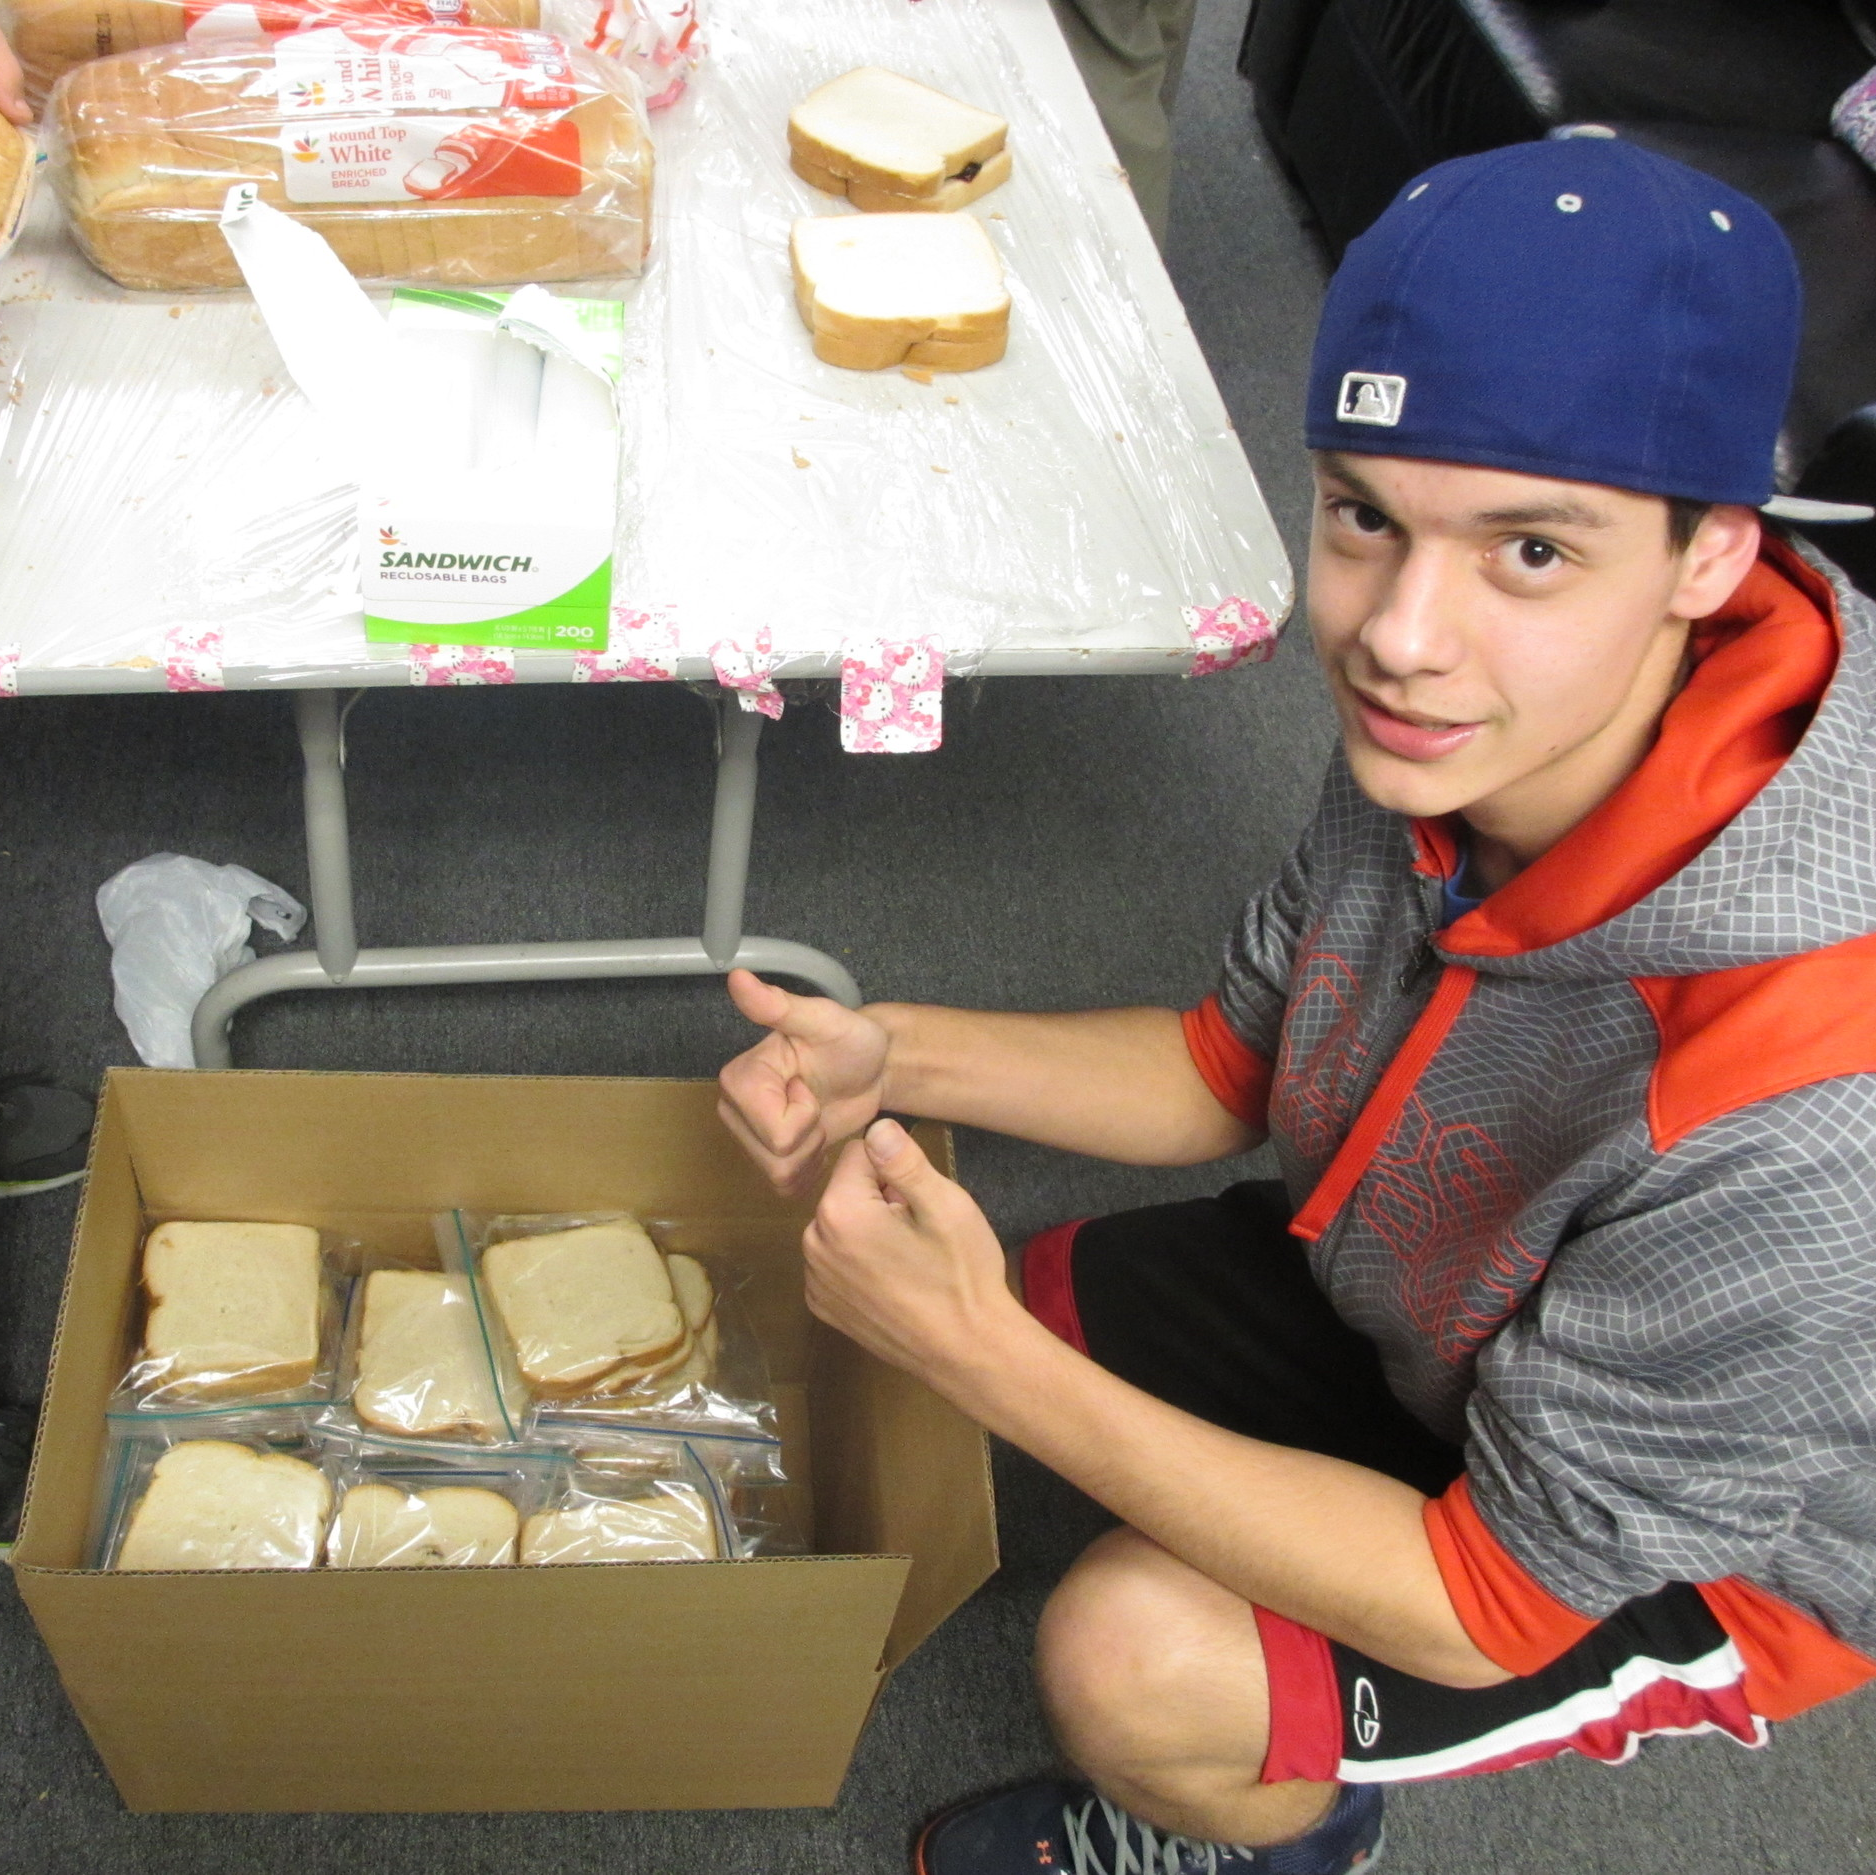 Josh packing up 150 PB&J sandwiches for delivery to a DC homeless shelter.